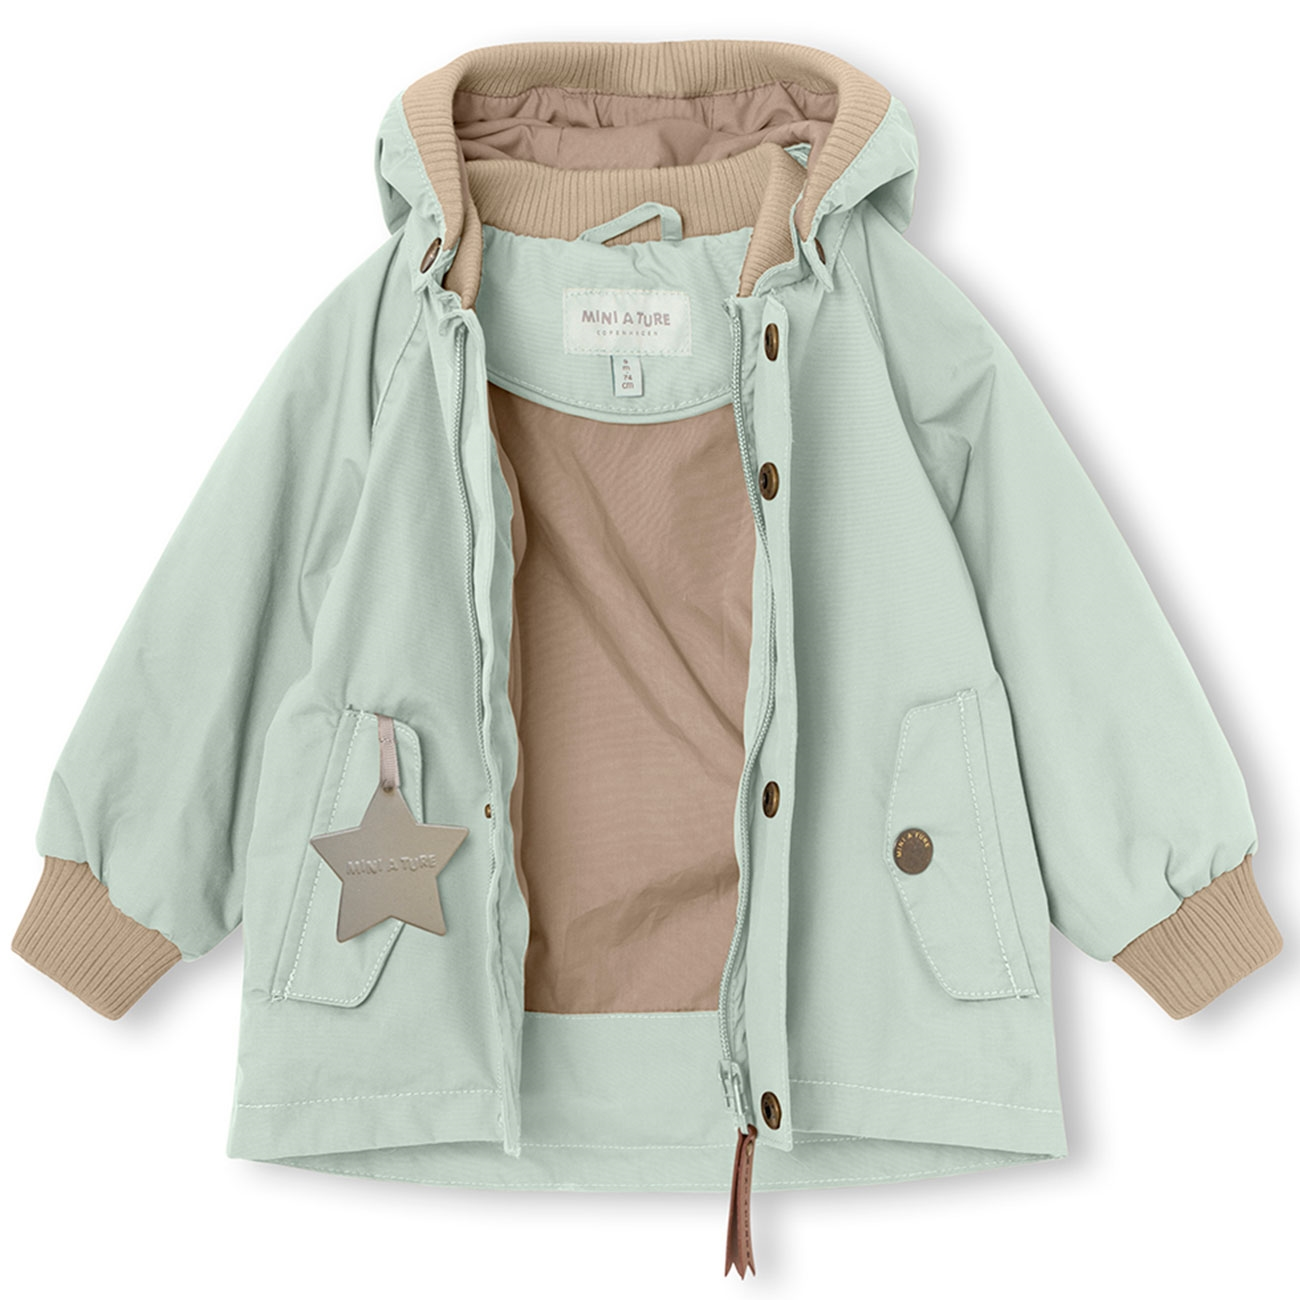 mini-a-ture-jacket-jakke-wally-blue-blaa